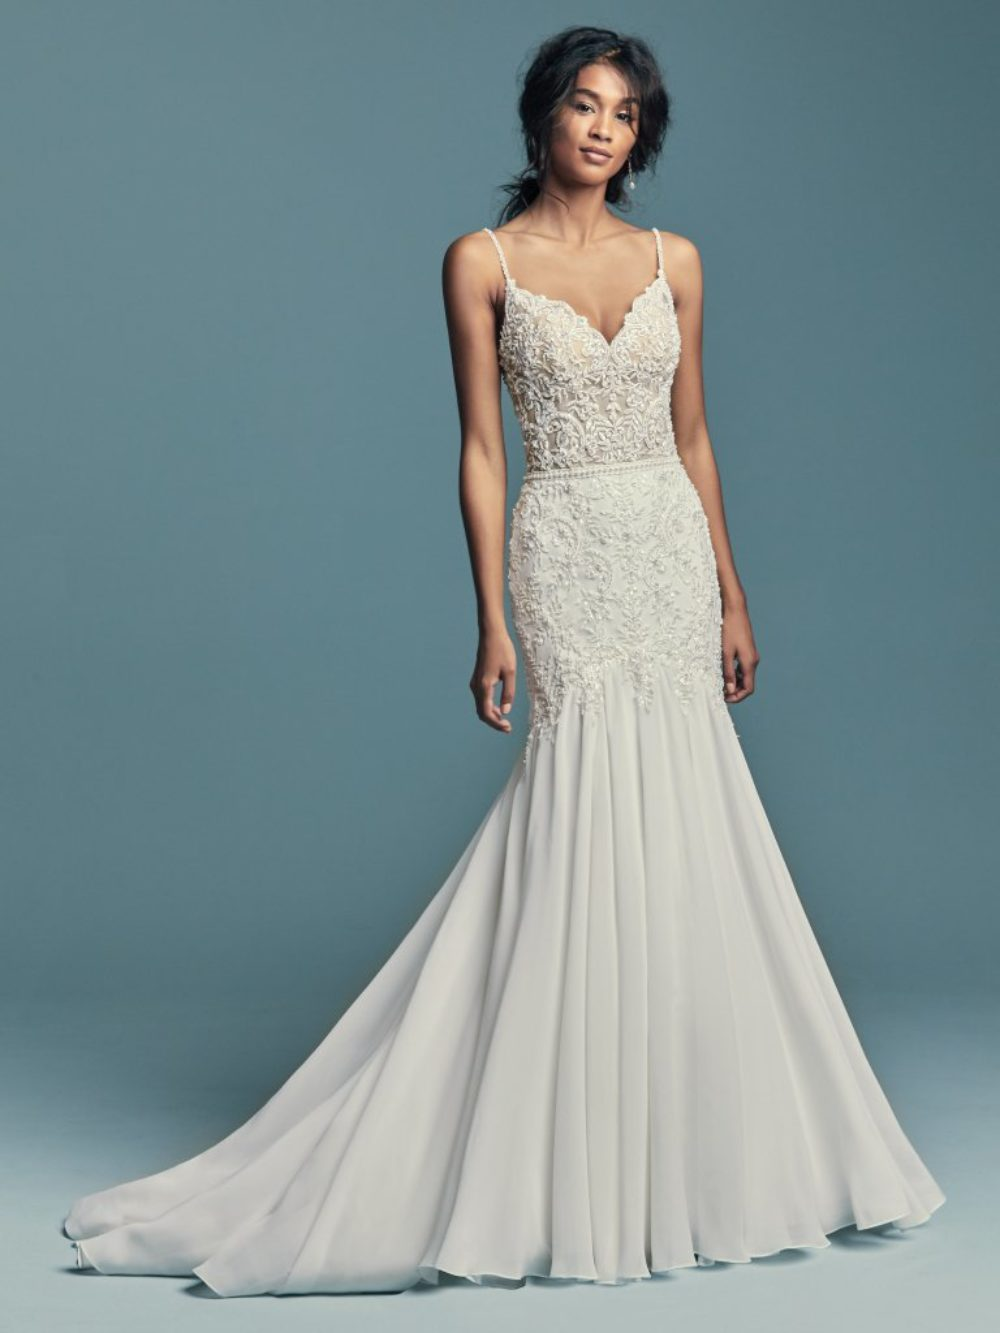 Maggie Sottero Wedding Dresses from Precious Memories Bridal Shop